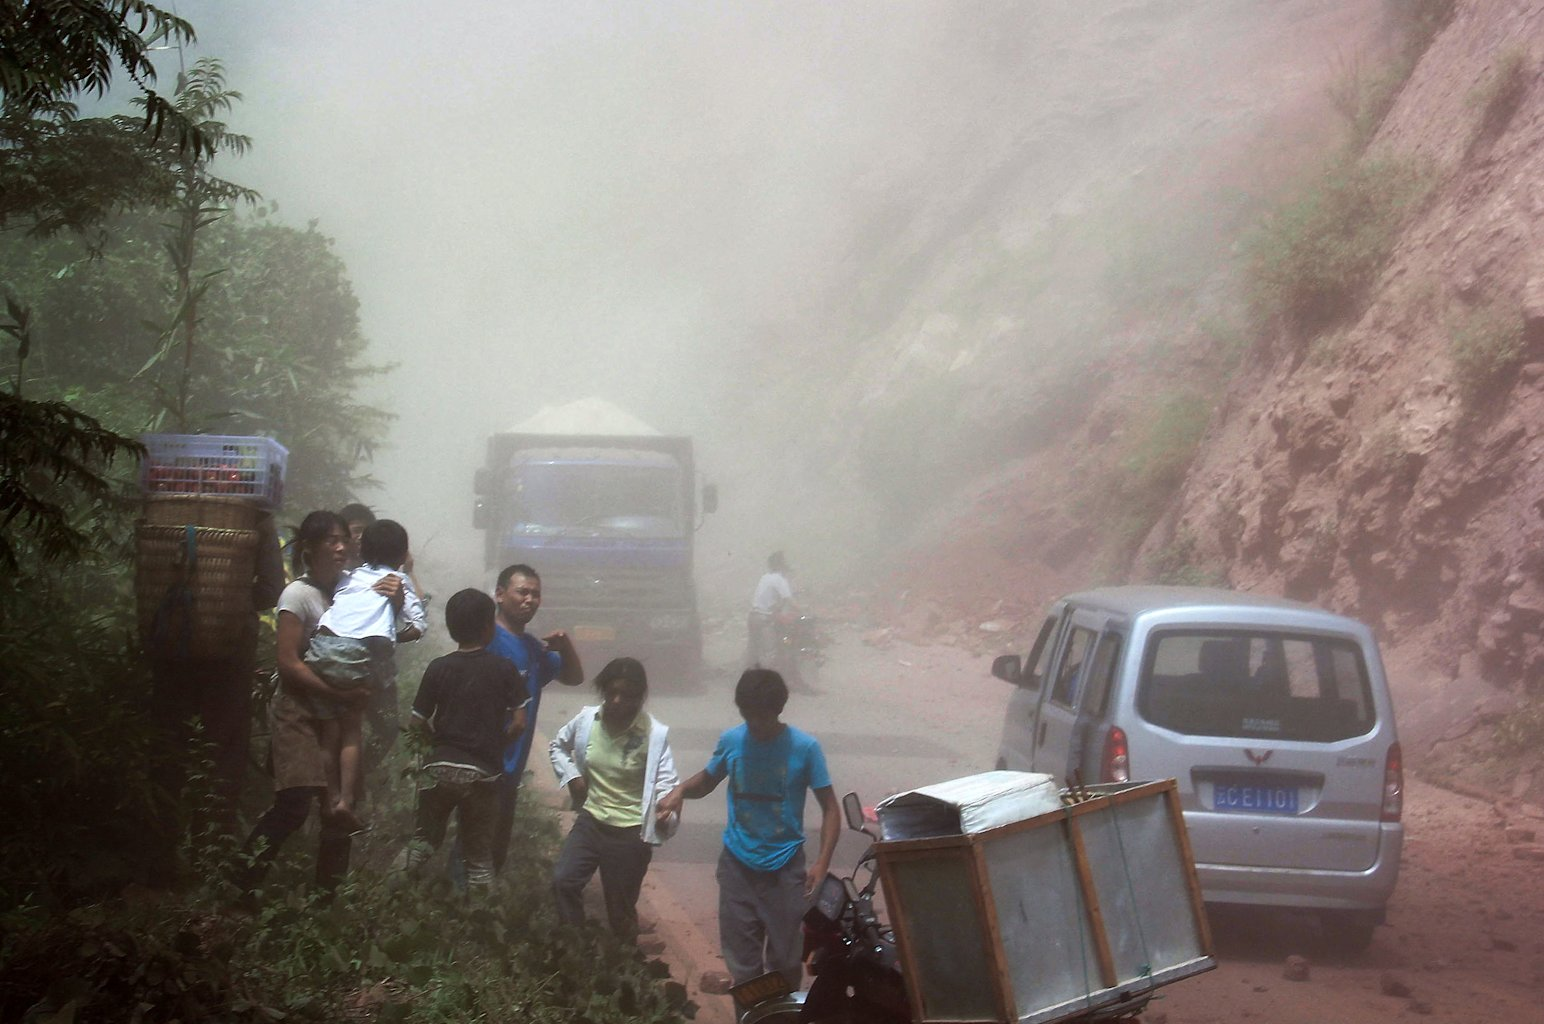 People run as rocks fall near their vehicles after the area was hit by an earthquake in Zhaotong town, Yiliang County, southwest China's Yunnan Province, Friday, Sept. 7, 2012. A series of earthquakes collapsed houses and triggered landslides Friday in a remote mountainous part of southwestern China where damage was preventing rescues and communications were disrupted. Dozens of deaths have been reported.